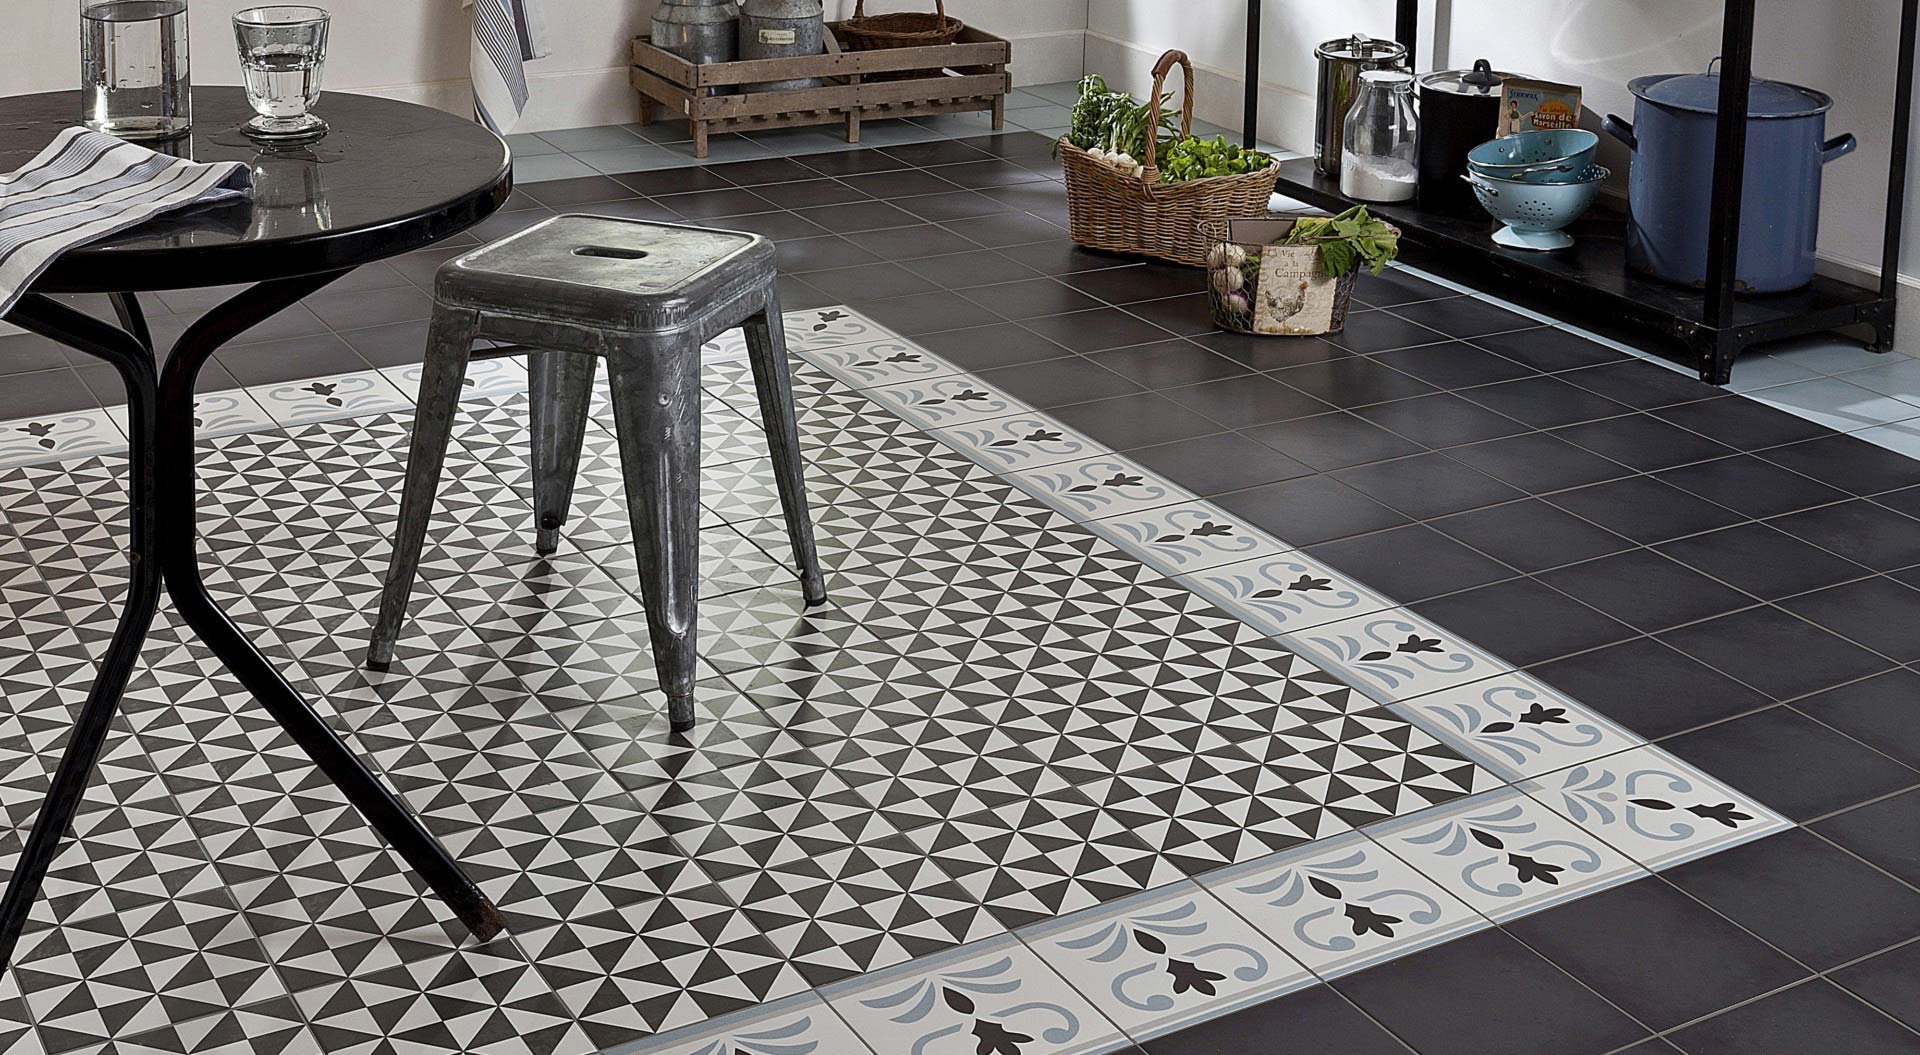 Bhv Tapis Salon Tapis En Carreaux Ciment